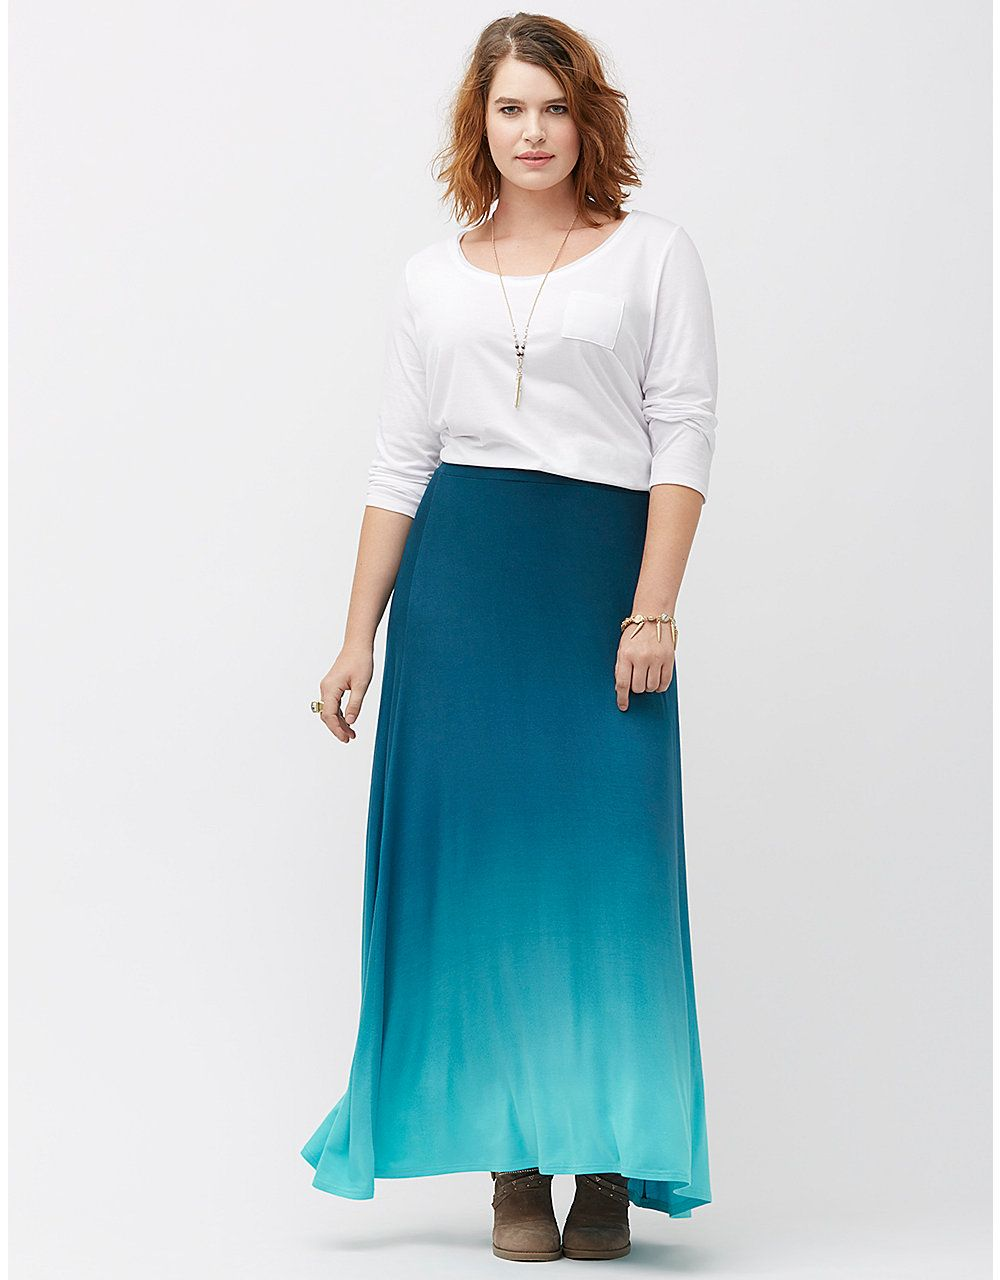 d906be53400d6 Ombre maxi skirt by Lane Bryant